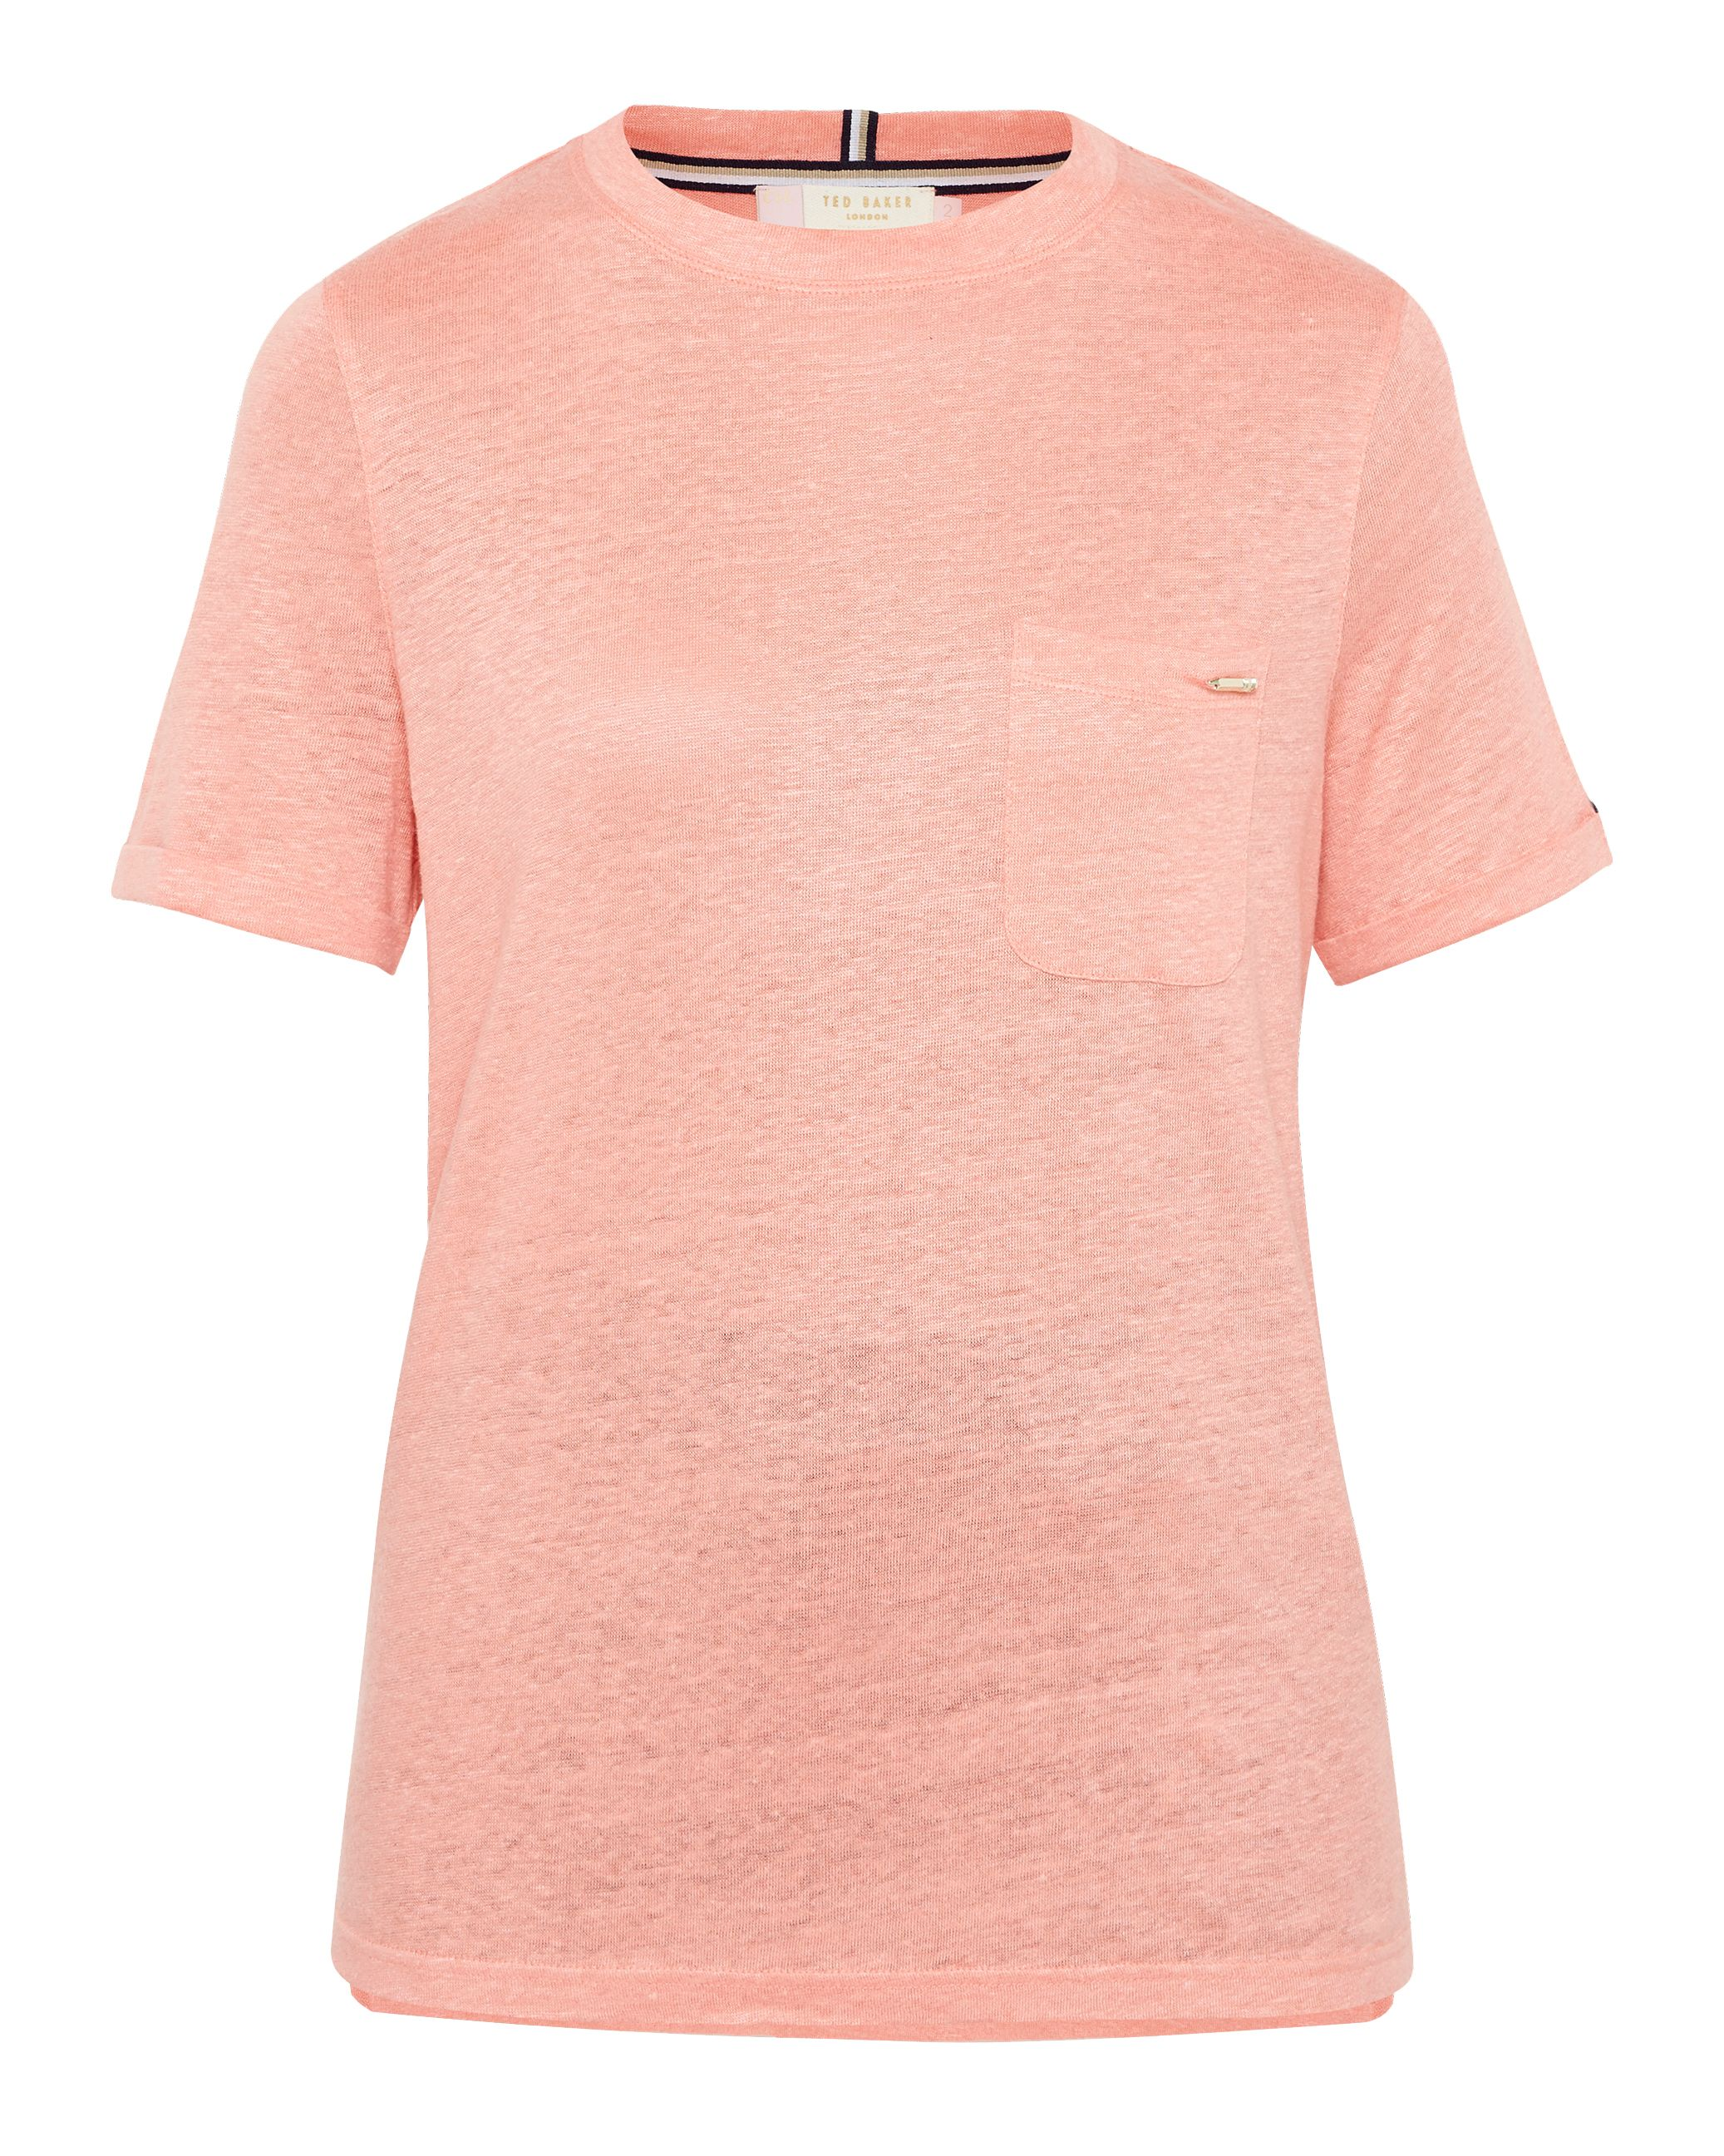 Ted Baker Harlaa Square Cut Linen T-Shirt, Coral